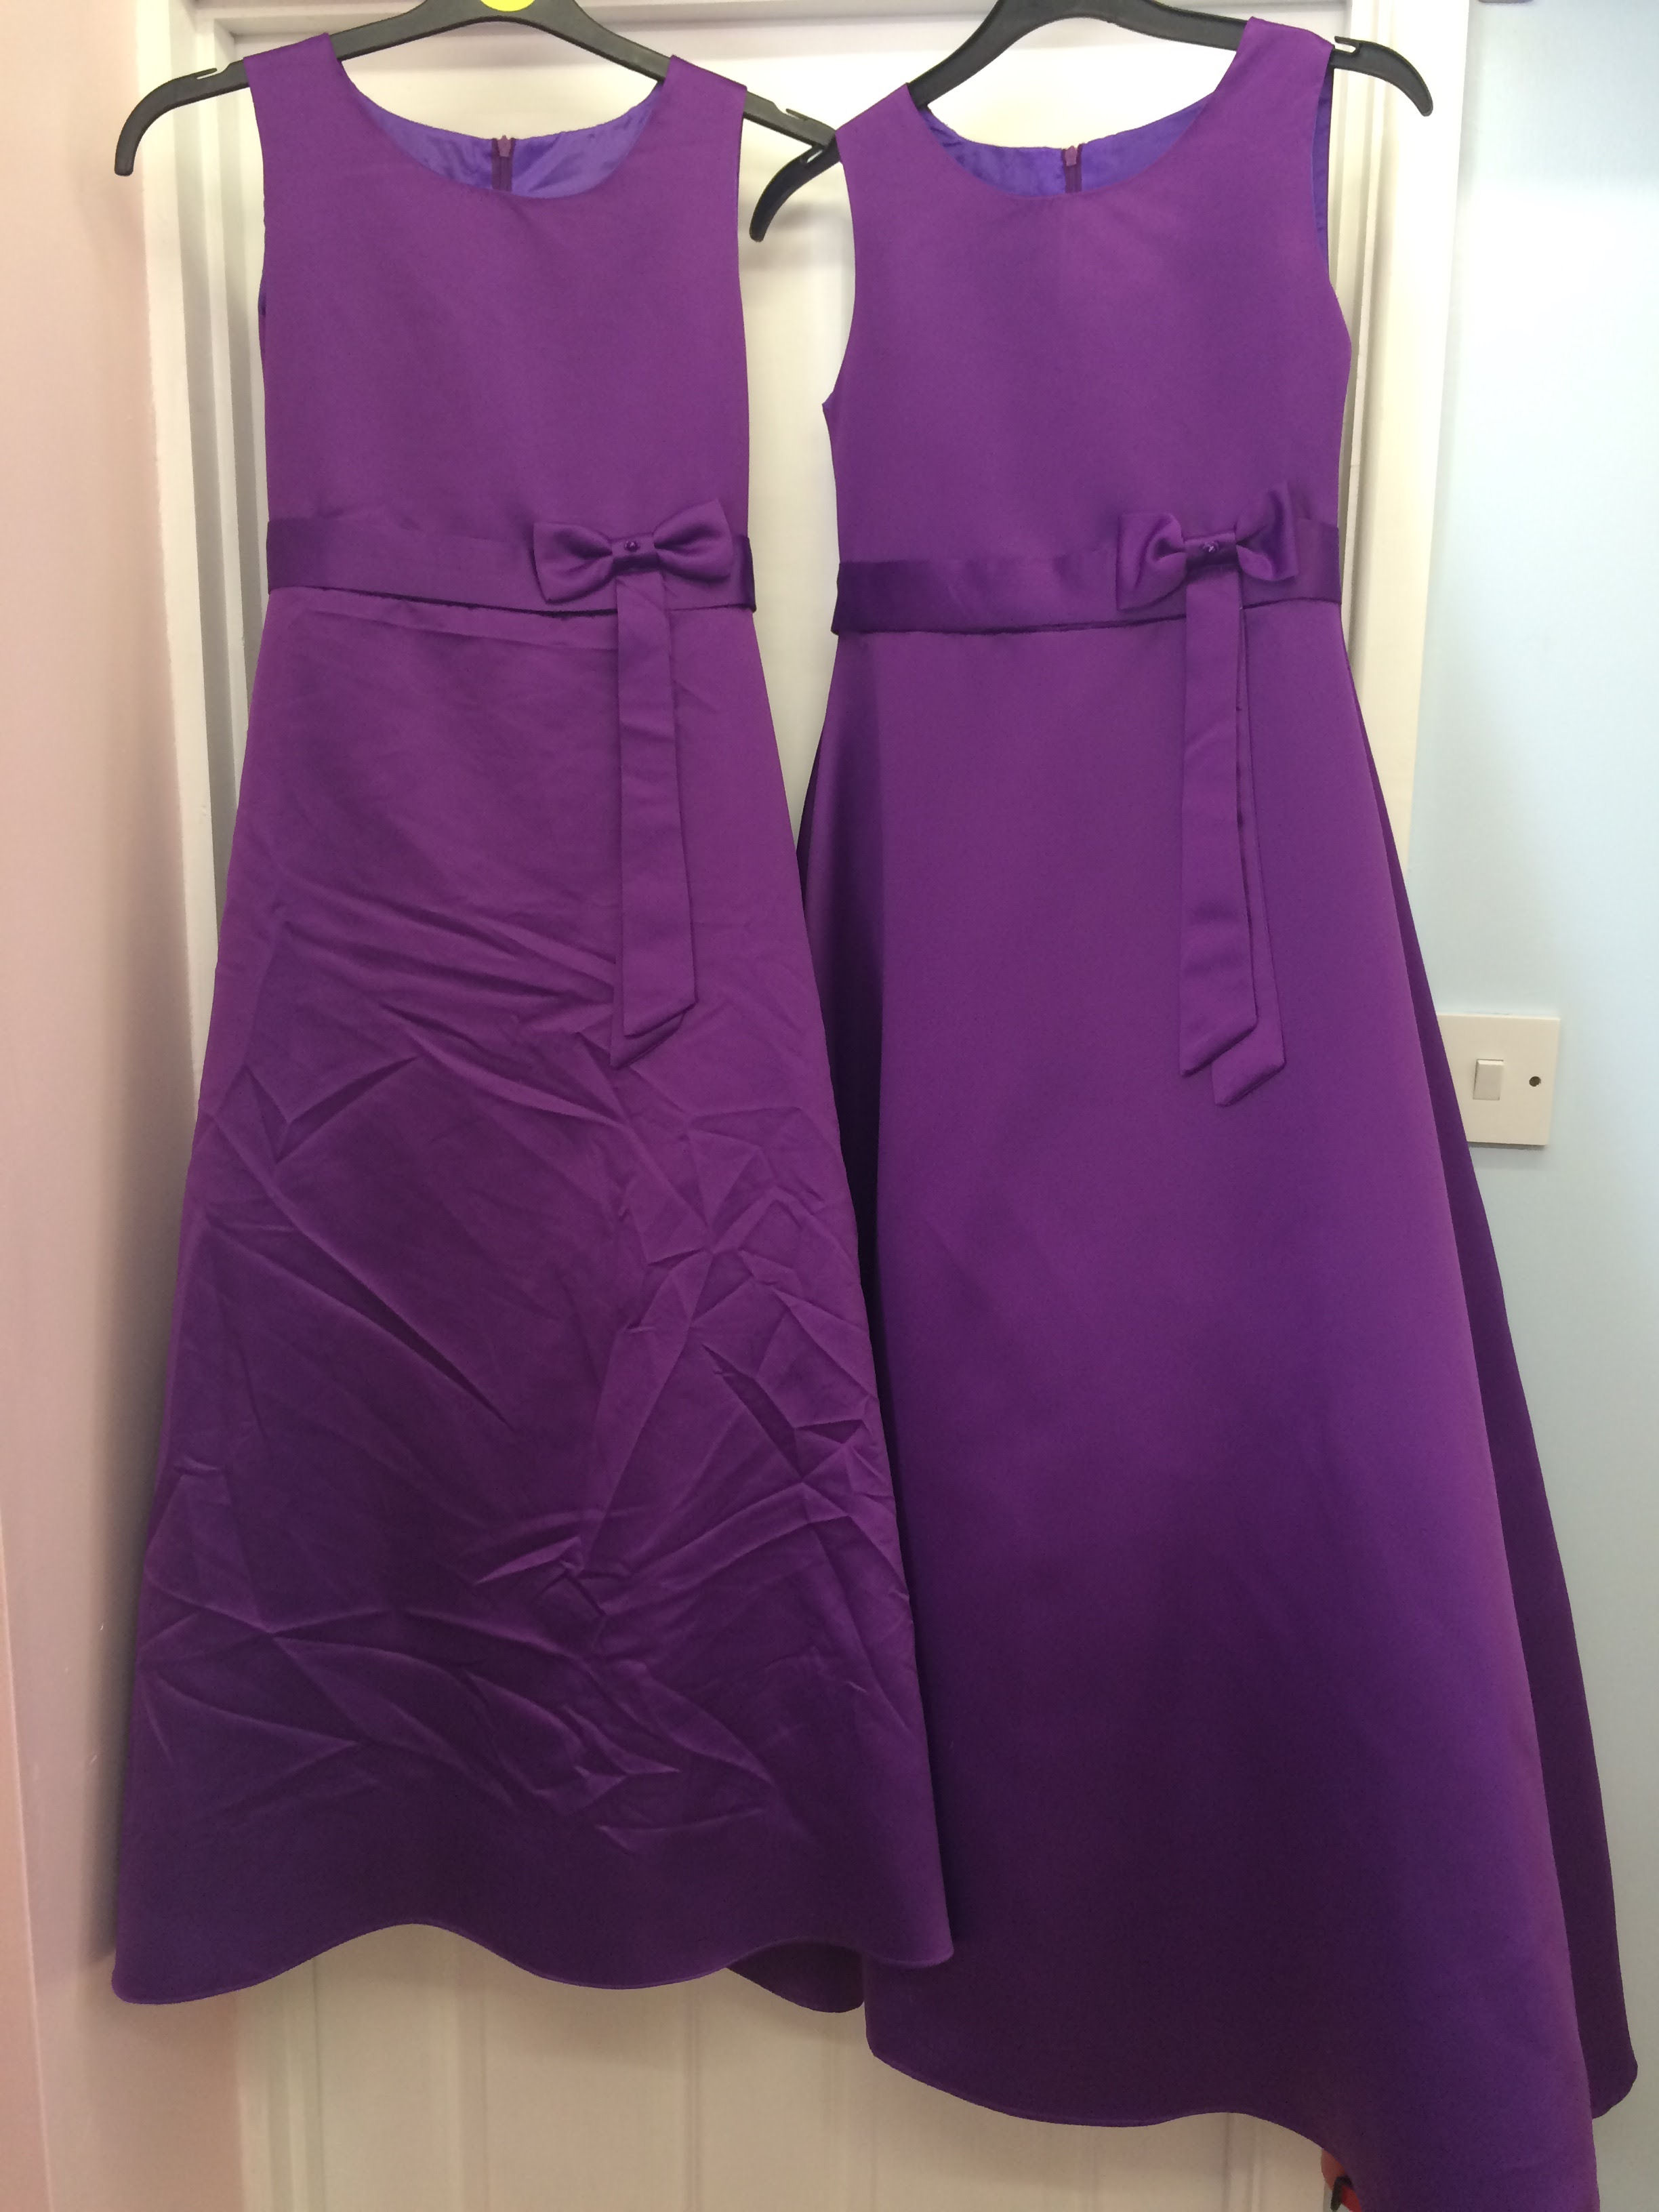 Steam pressed dresses, before and after